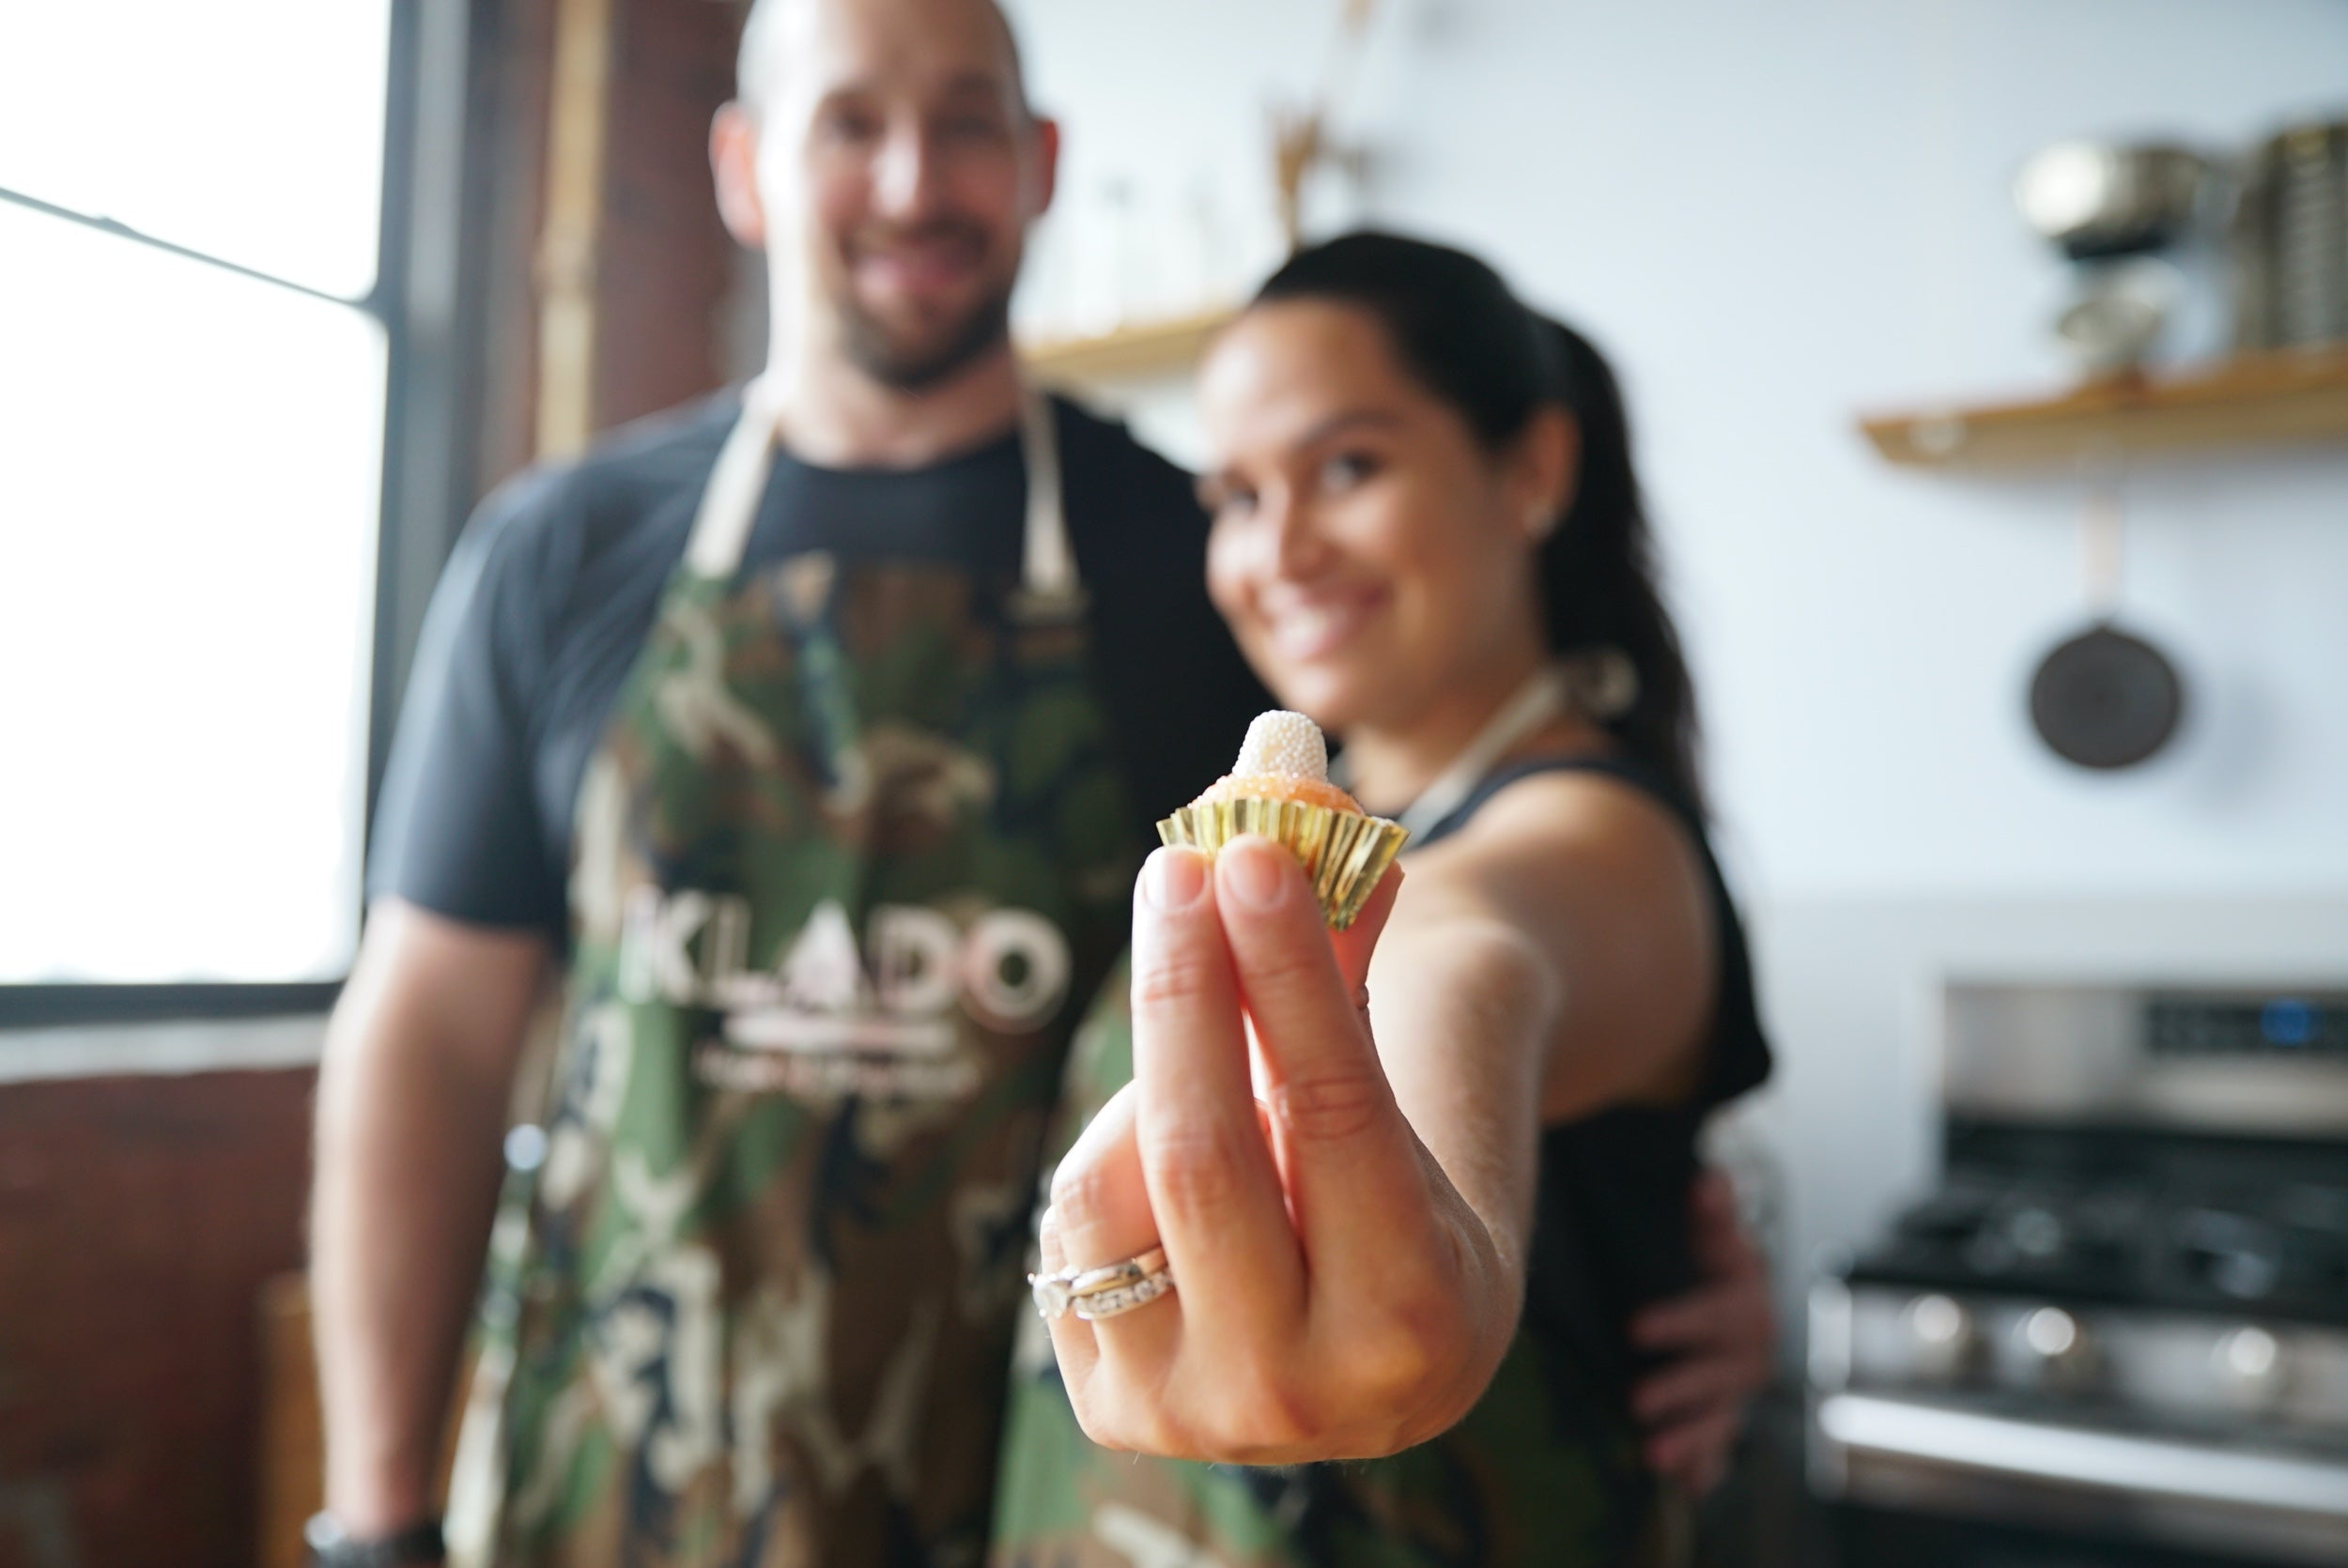 Two people stand, out of focus, wearing aprons. The woman on the right holds out a dessert, in focus in the foreground